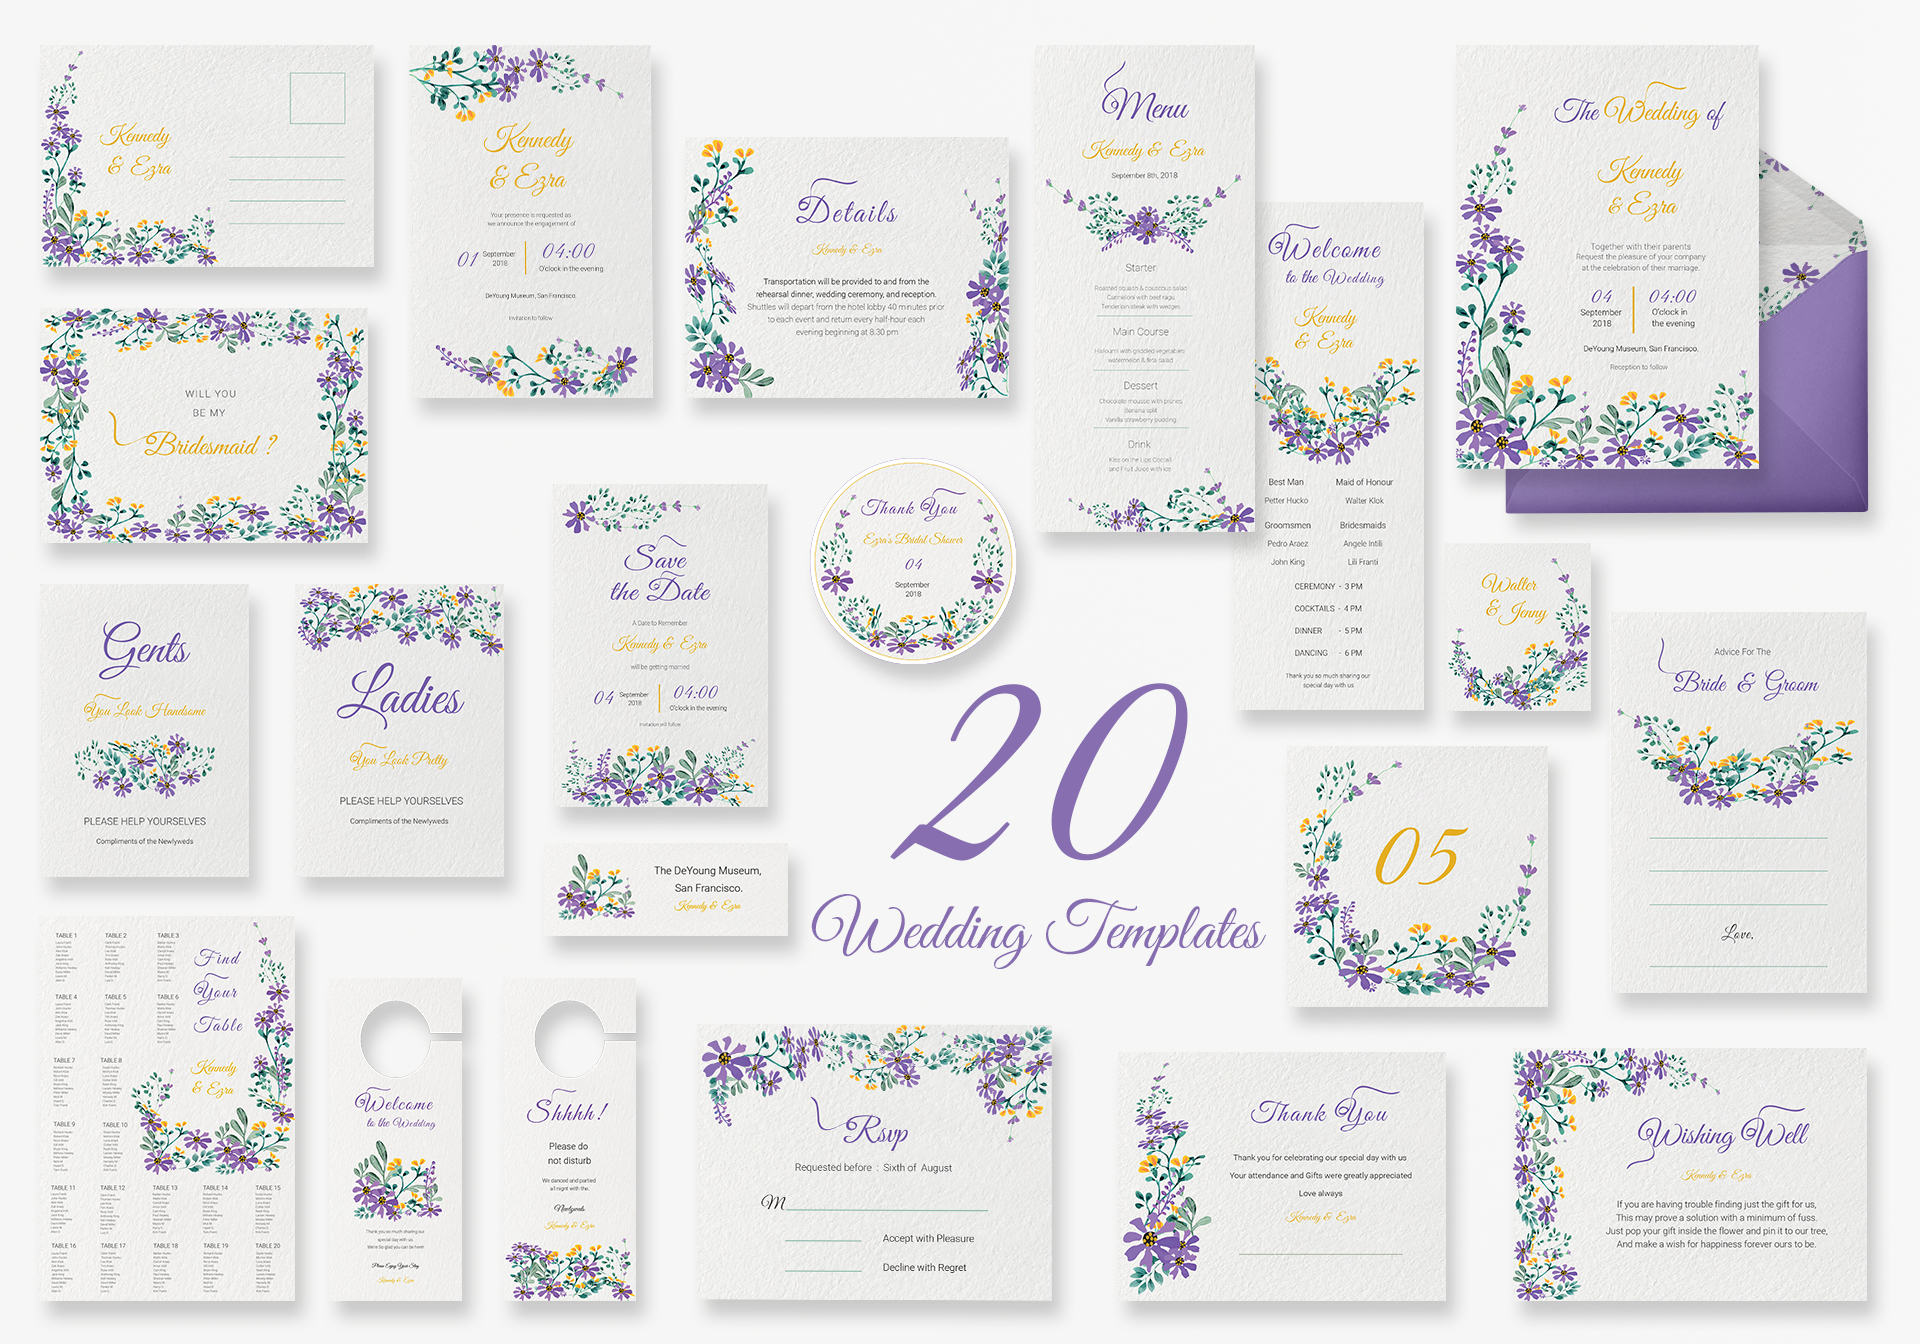 Garden Wedding Templates (Includes 20 Designs)